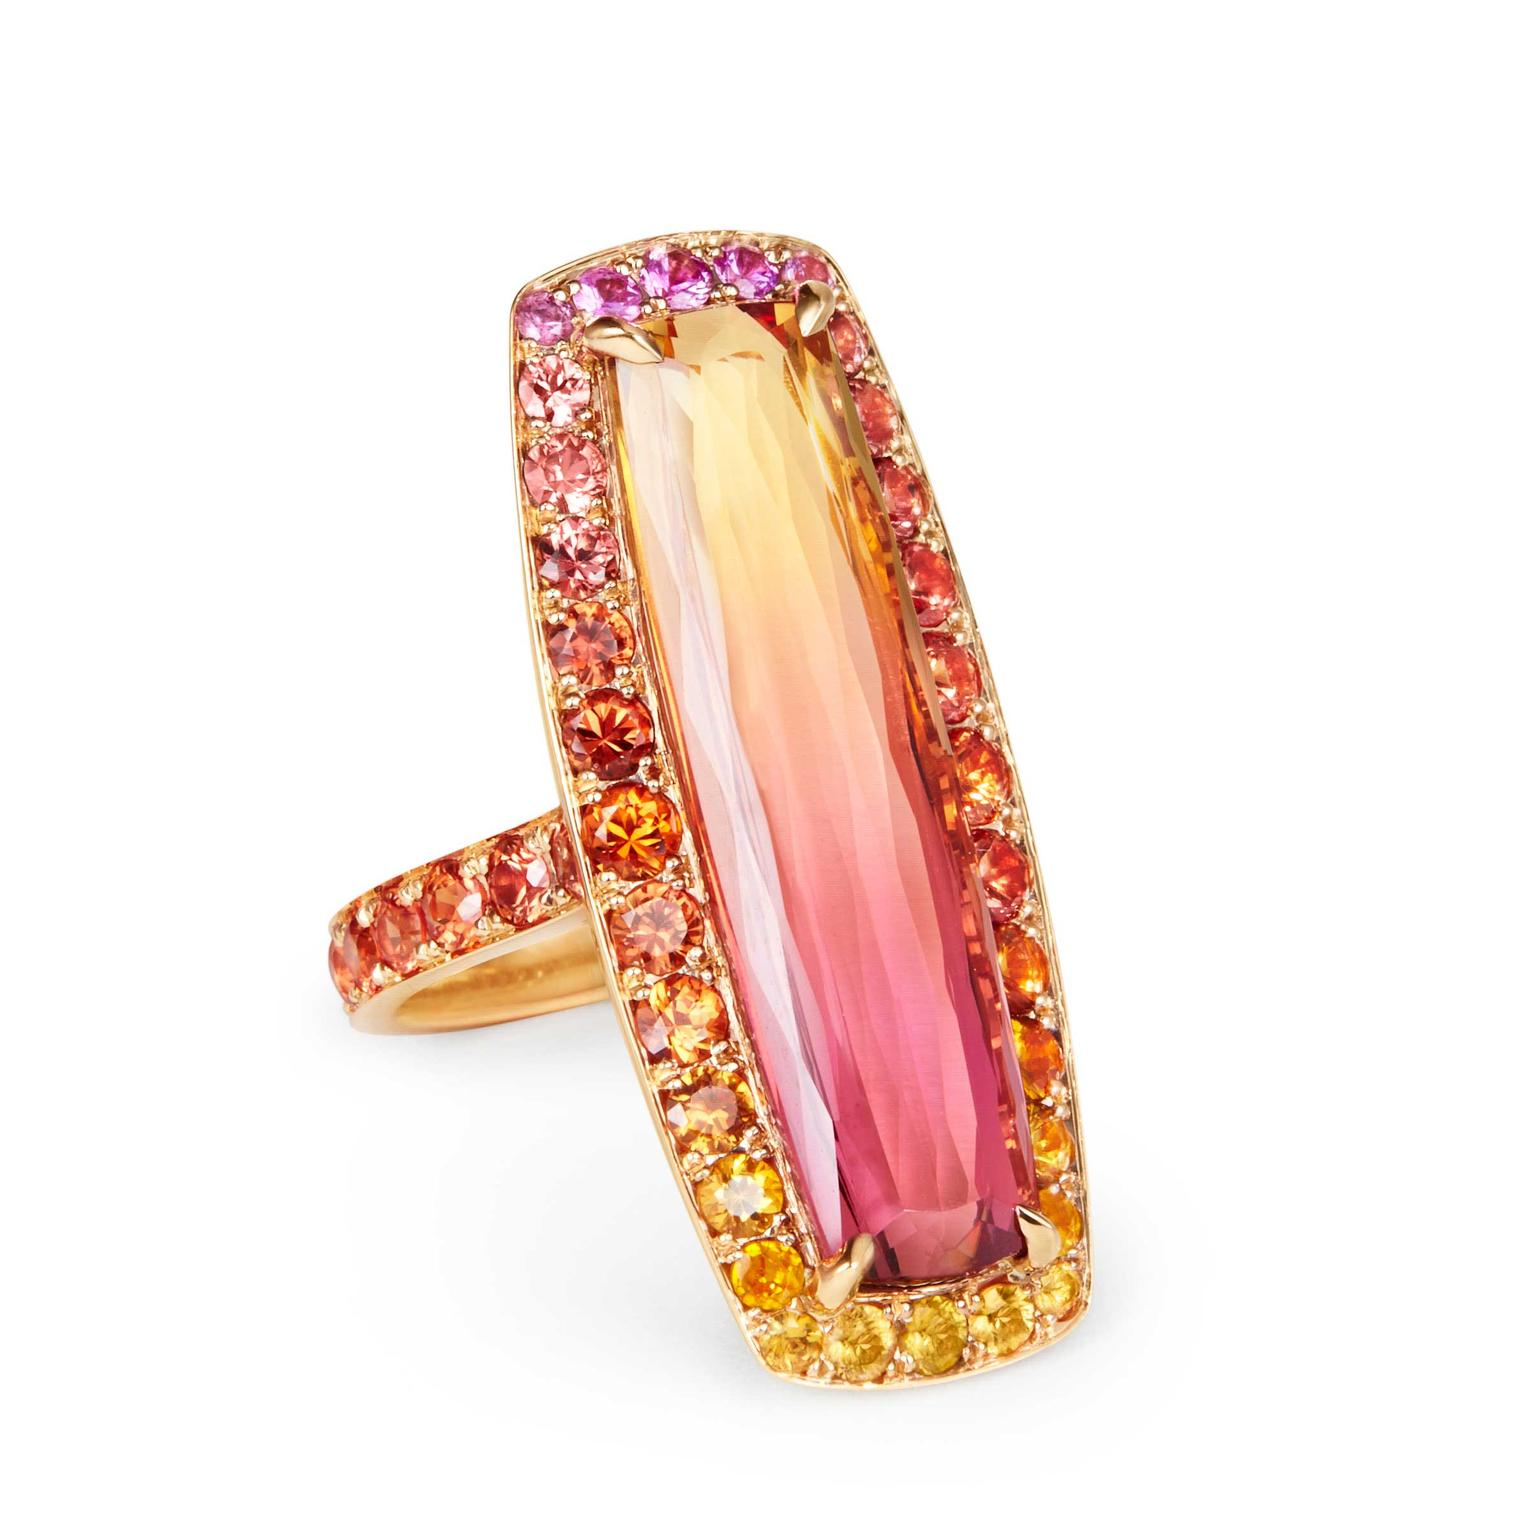 Katherine Jetter bi-coloured topaz ring